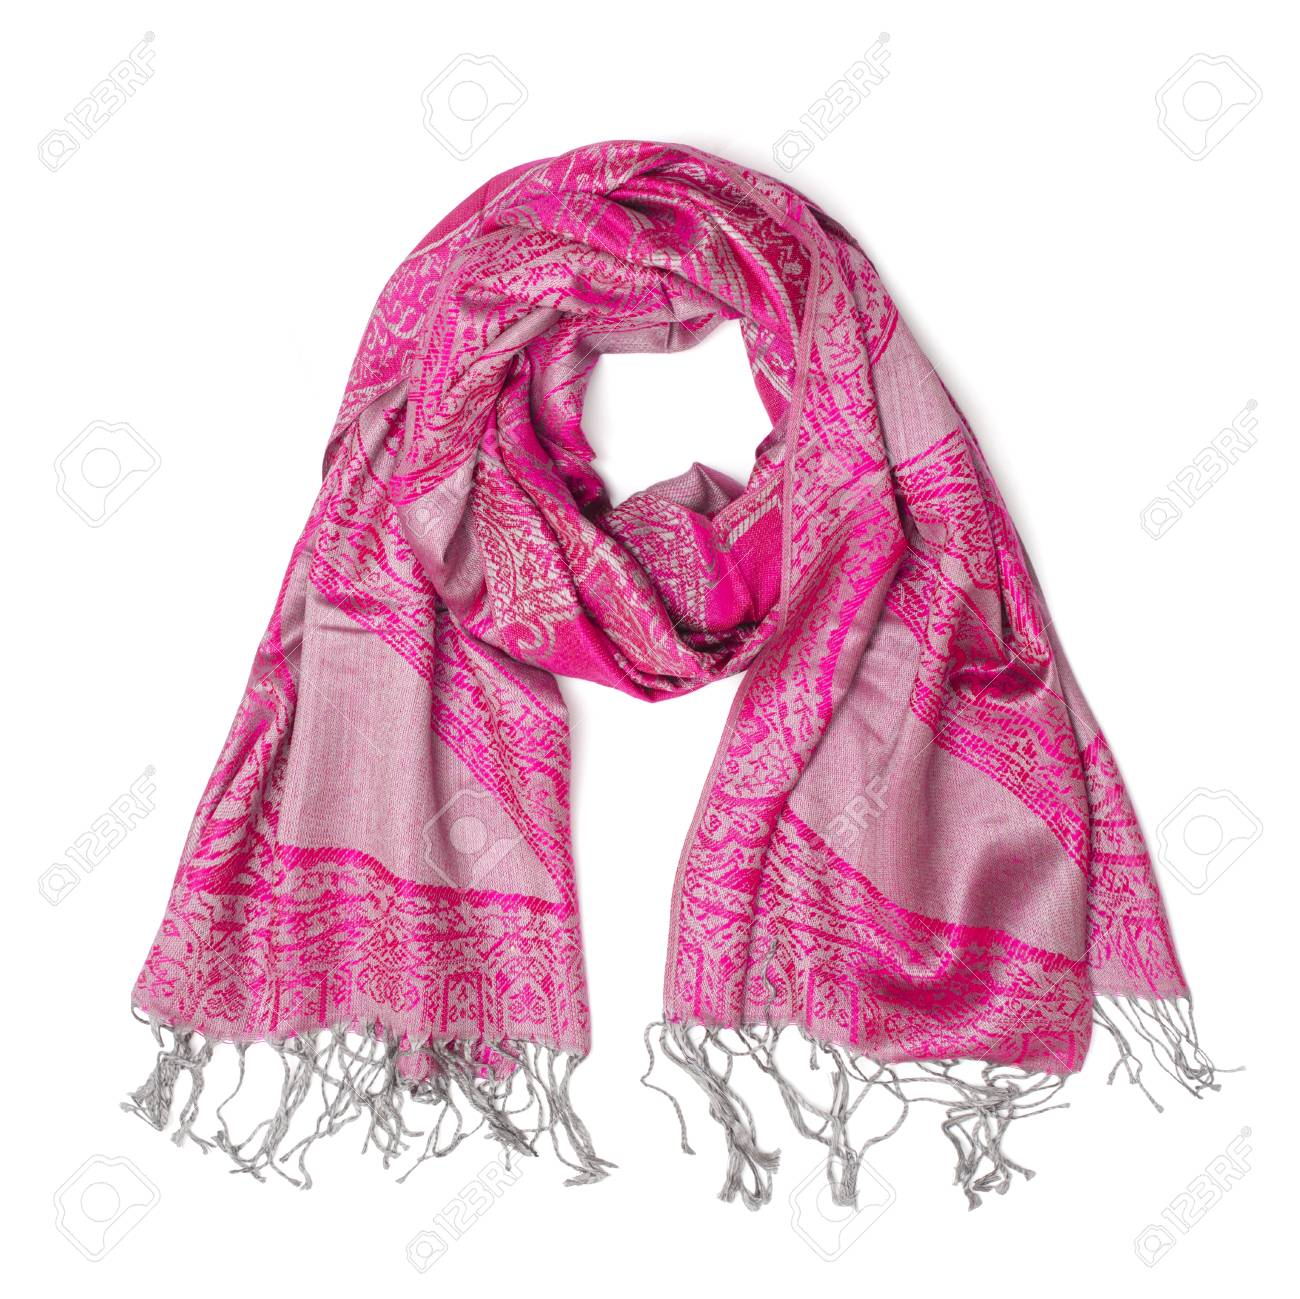 dc69708c6 Pink Women's Scarf Isolated On White Stock Photo, Picture And ...